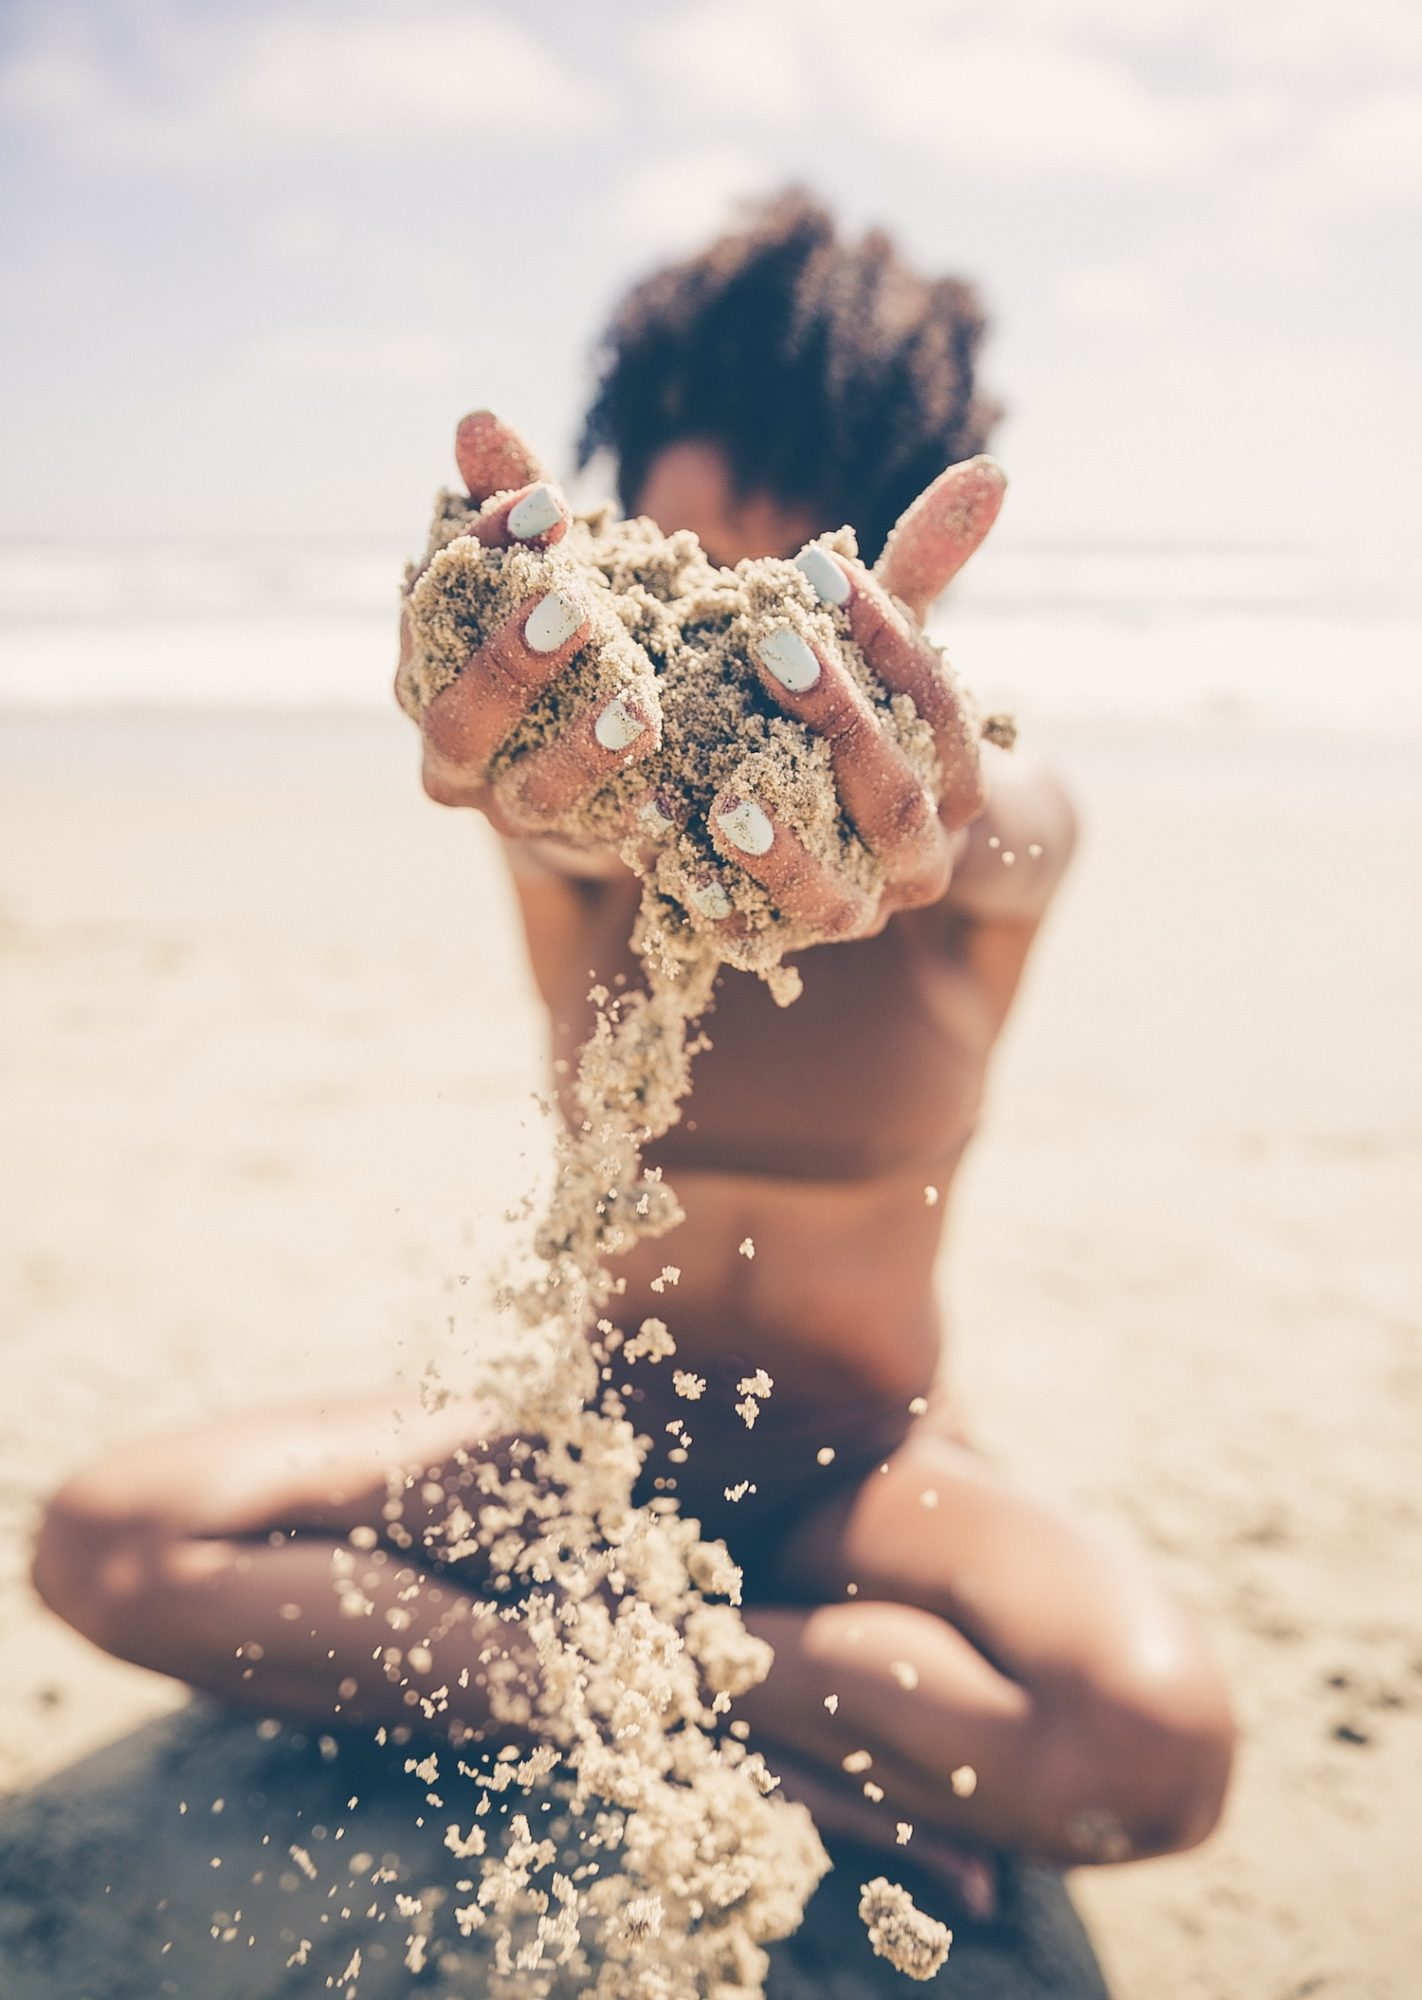 Black woman with sand falling from her hands